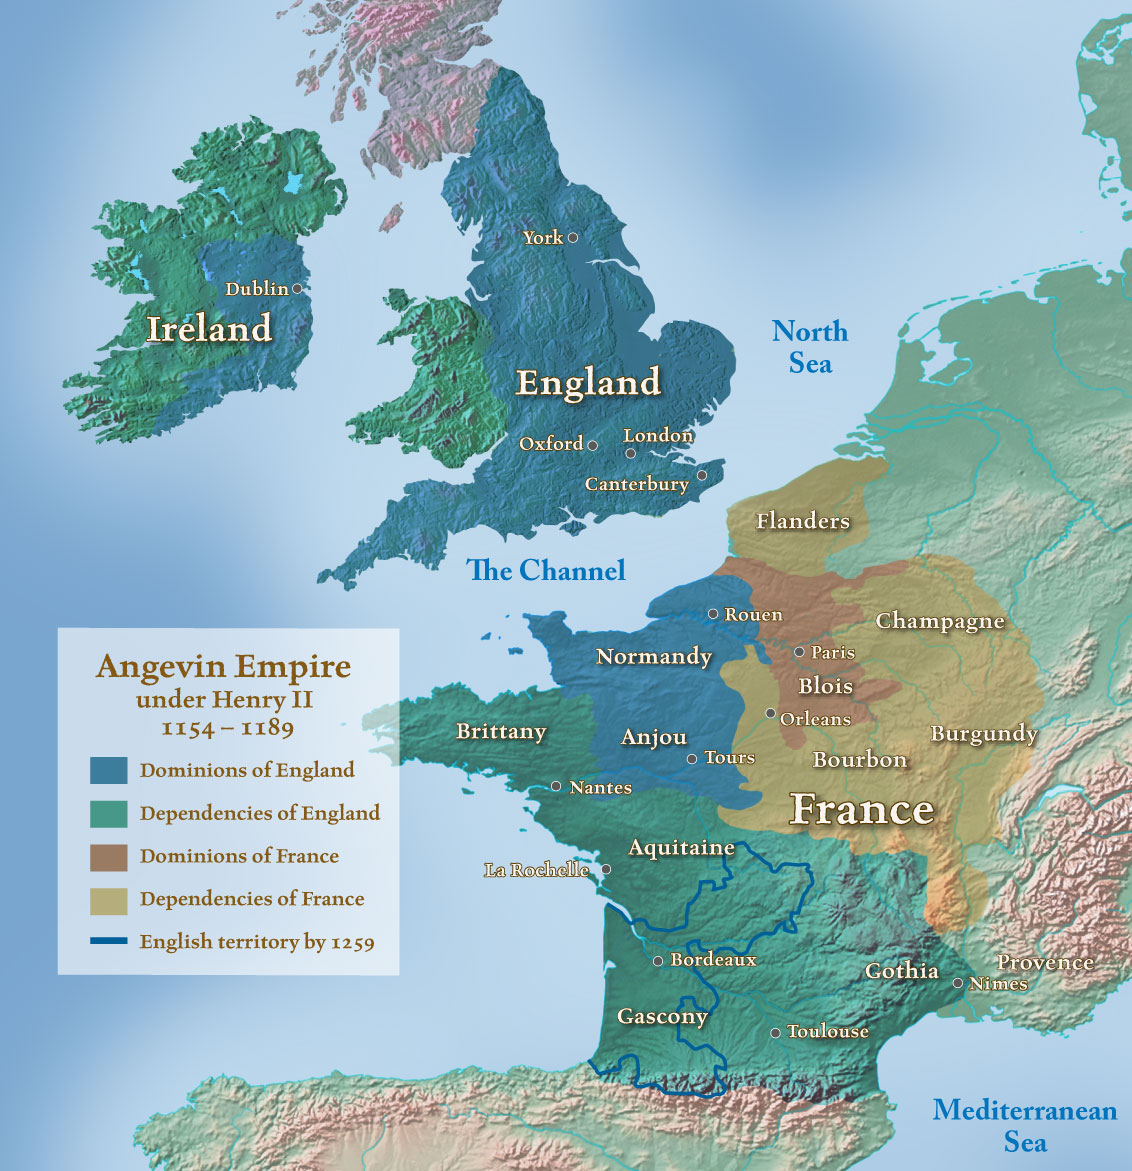 the angevin empire In its full est extent, the angevin empire comprised the kingdom of england, the lordship of ireland, the duchy of normandy and the duchy of aquitaine (the duchy of aquitaine, which included the county of poitiers, the duchy of gascony, the county of périgord, the county of la marche, the county of auvergne and the viscountcy [shrievalty] of.